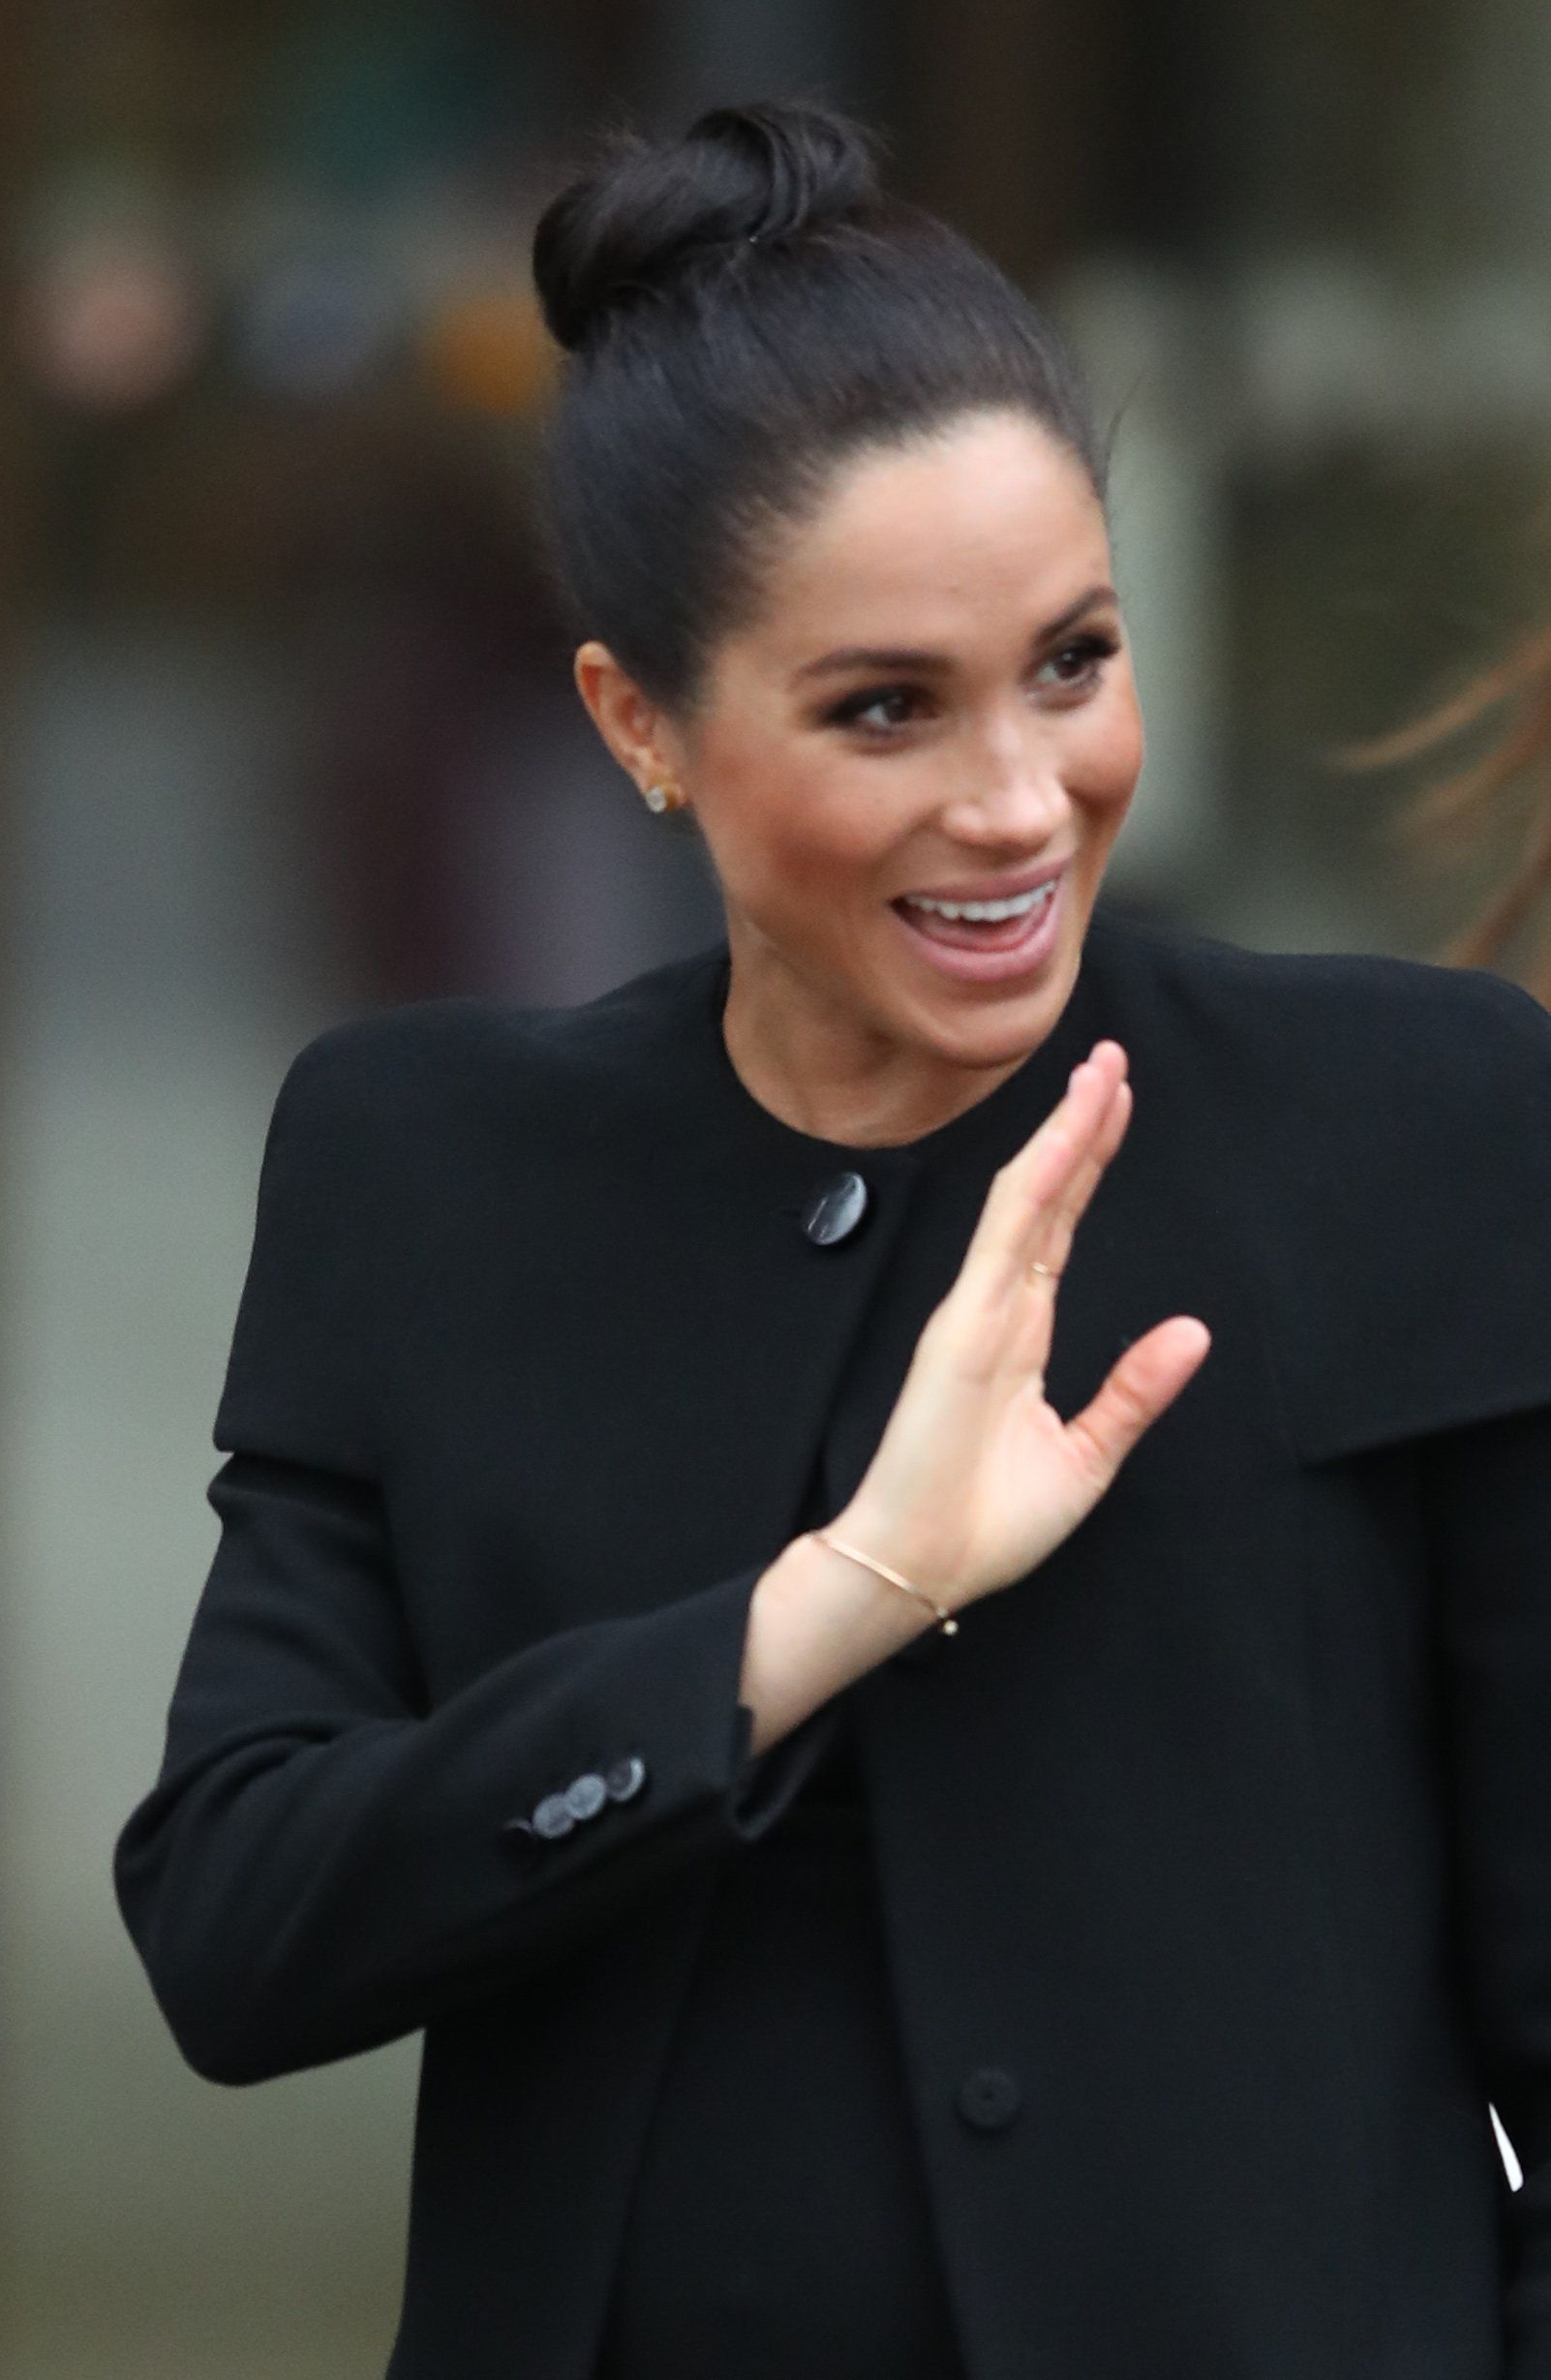 The Duchess of Sussex waves as she leaves after a visit to the Association of Commonwealth Universities at the University of London. (Photo by Andrew Matthews/PA Images via Getty Images)